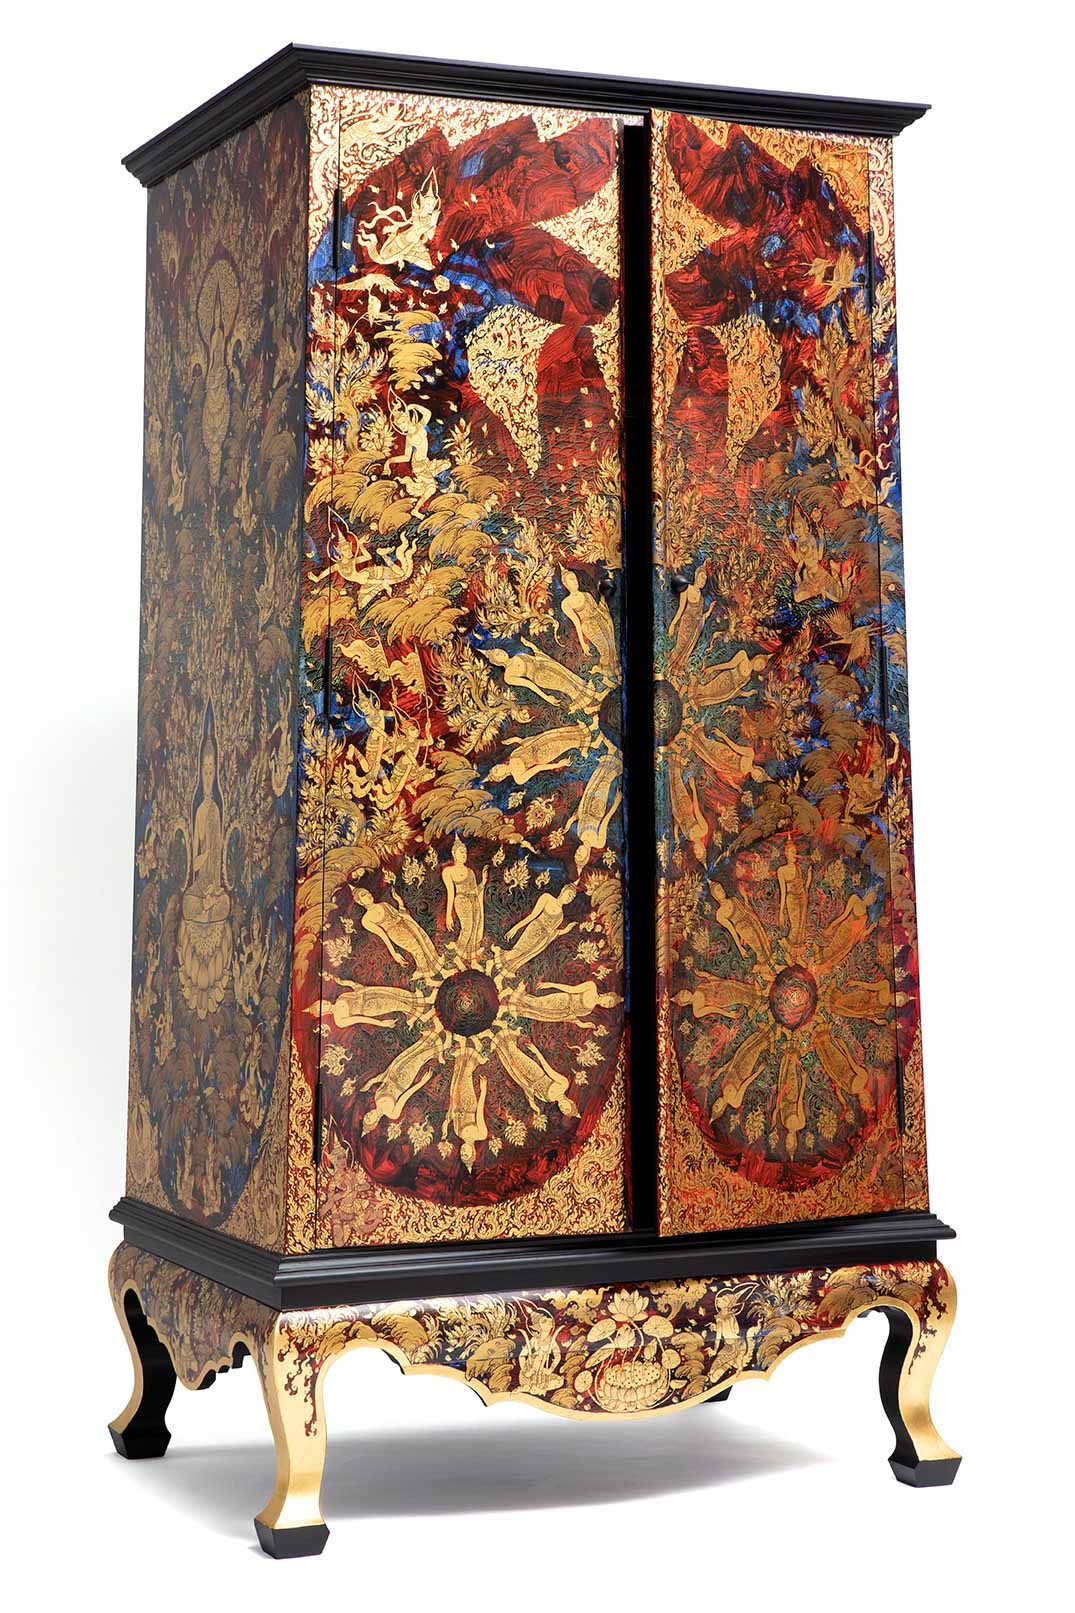 The Contemporary Tipitaka Cabinet No.10